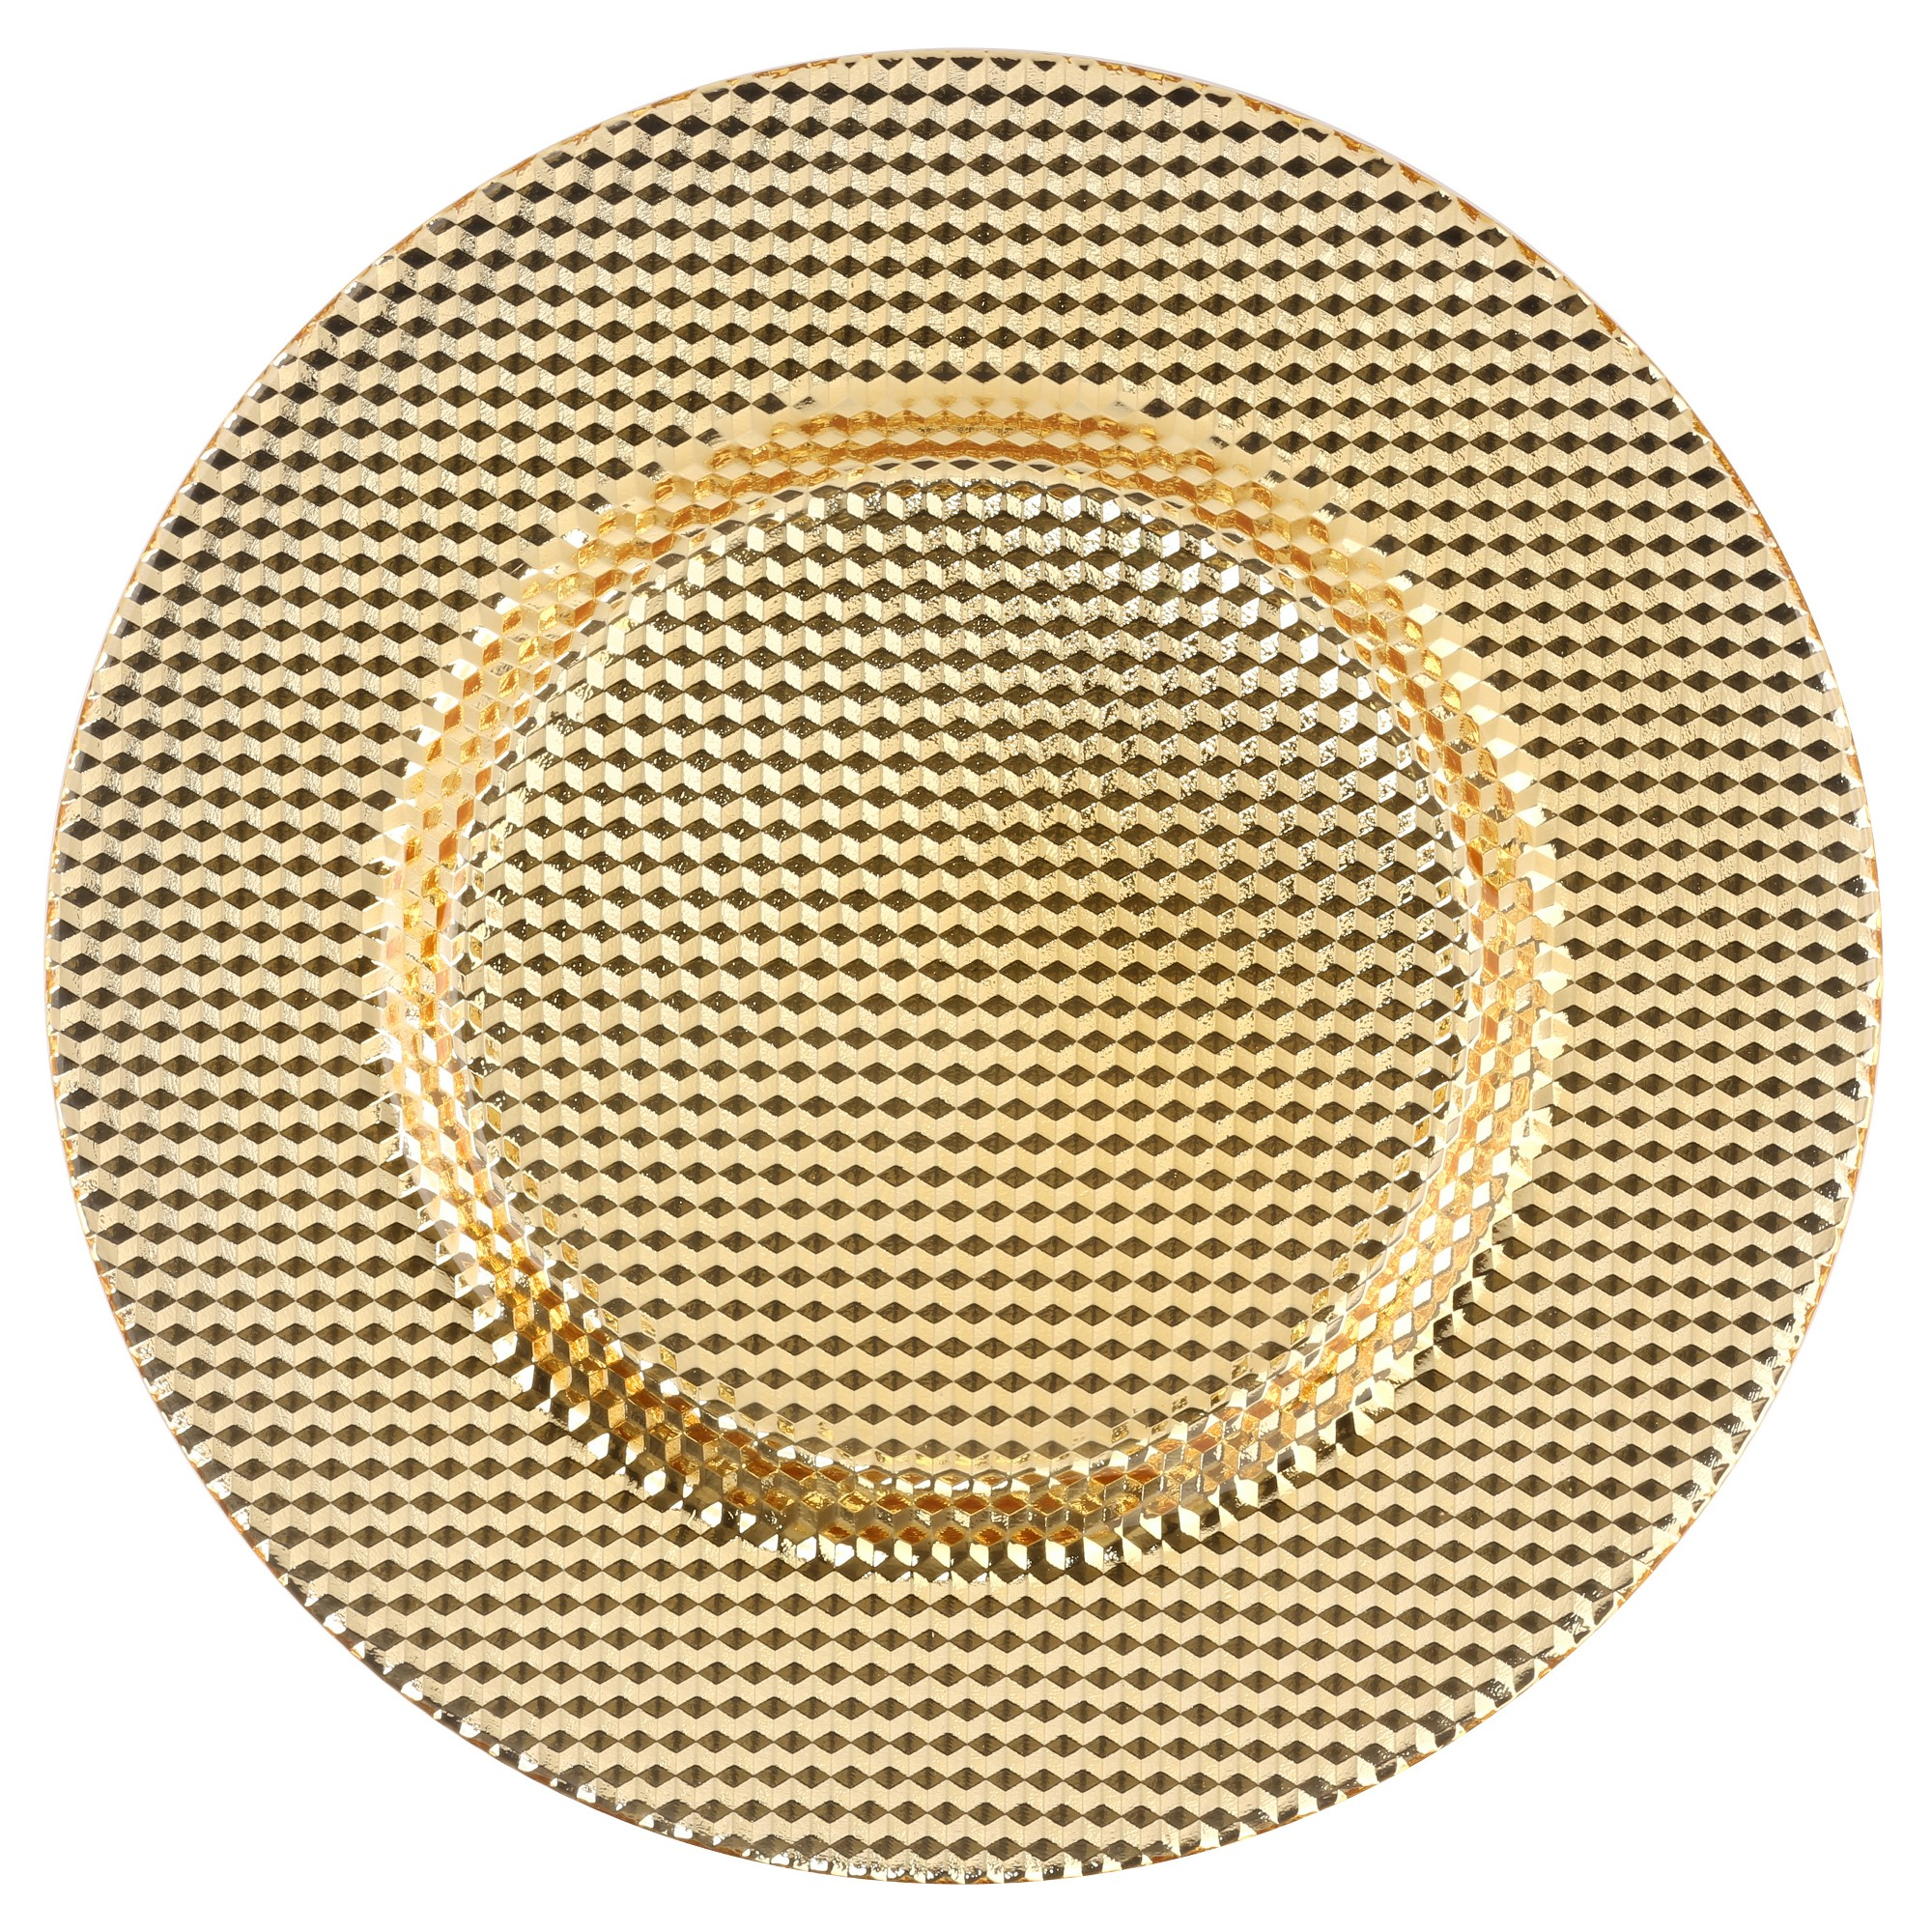 10 Strawberry Street 13 Deco Glass Charger - Gold, Golden Mist